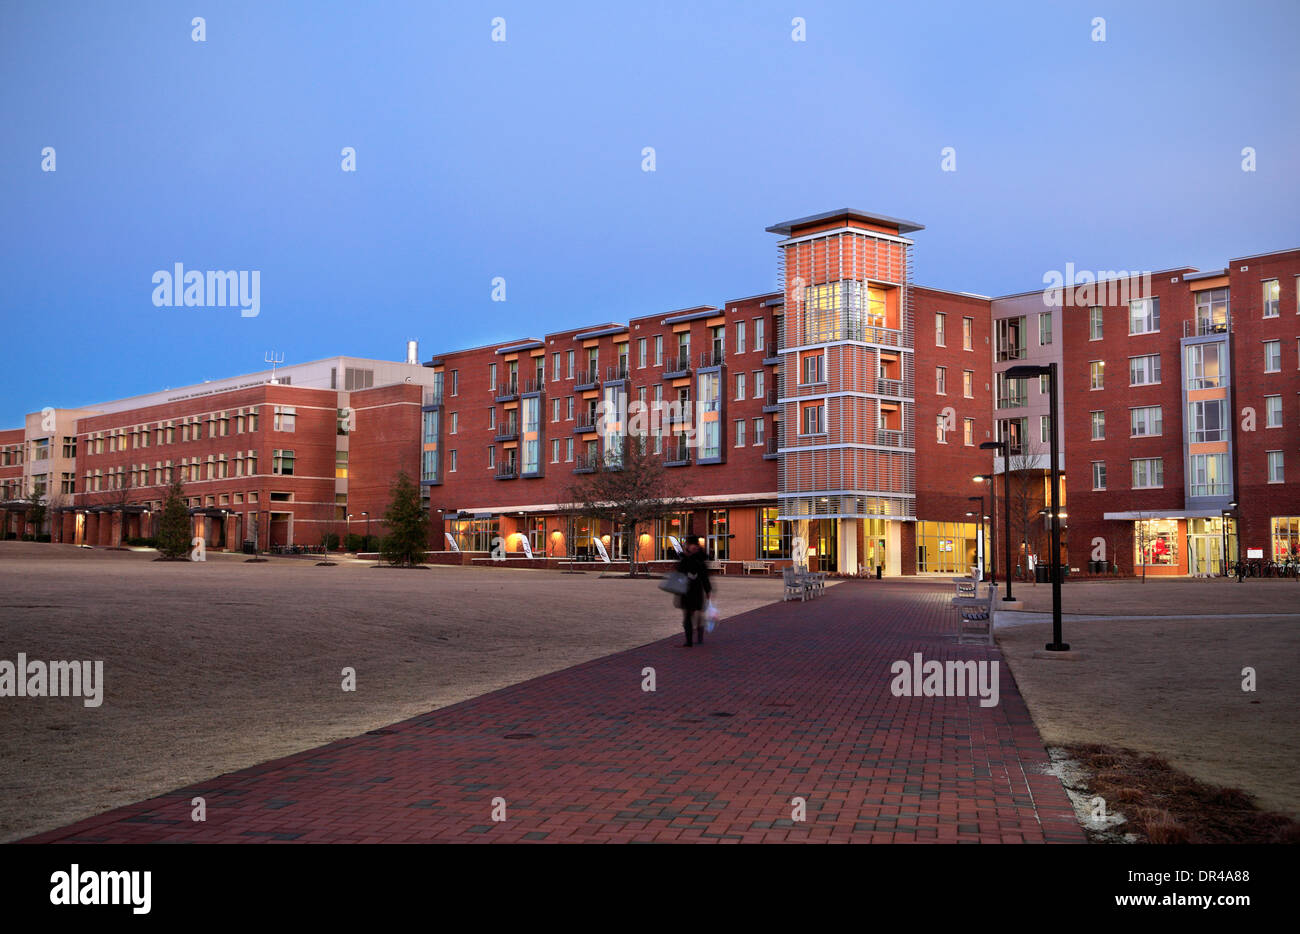 Student housing on the Oval at NC State University Centennial campus, in Raleigh, North Carolina. Stock Photo